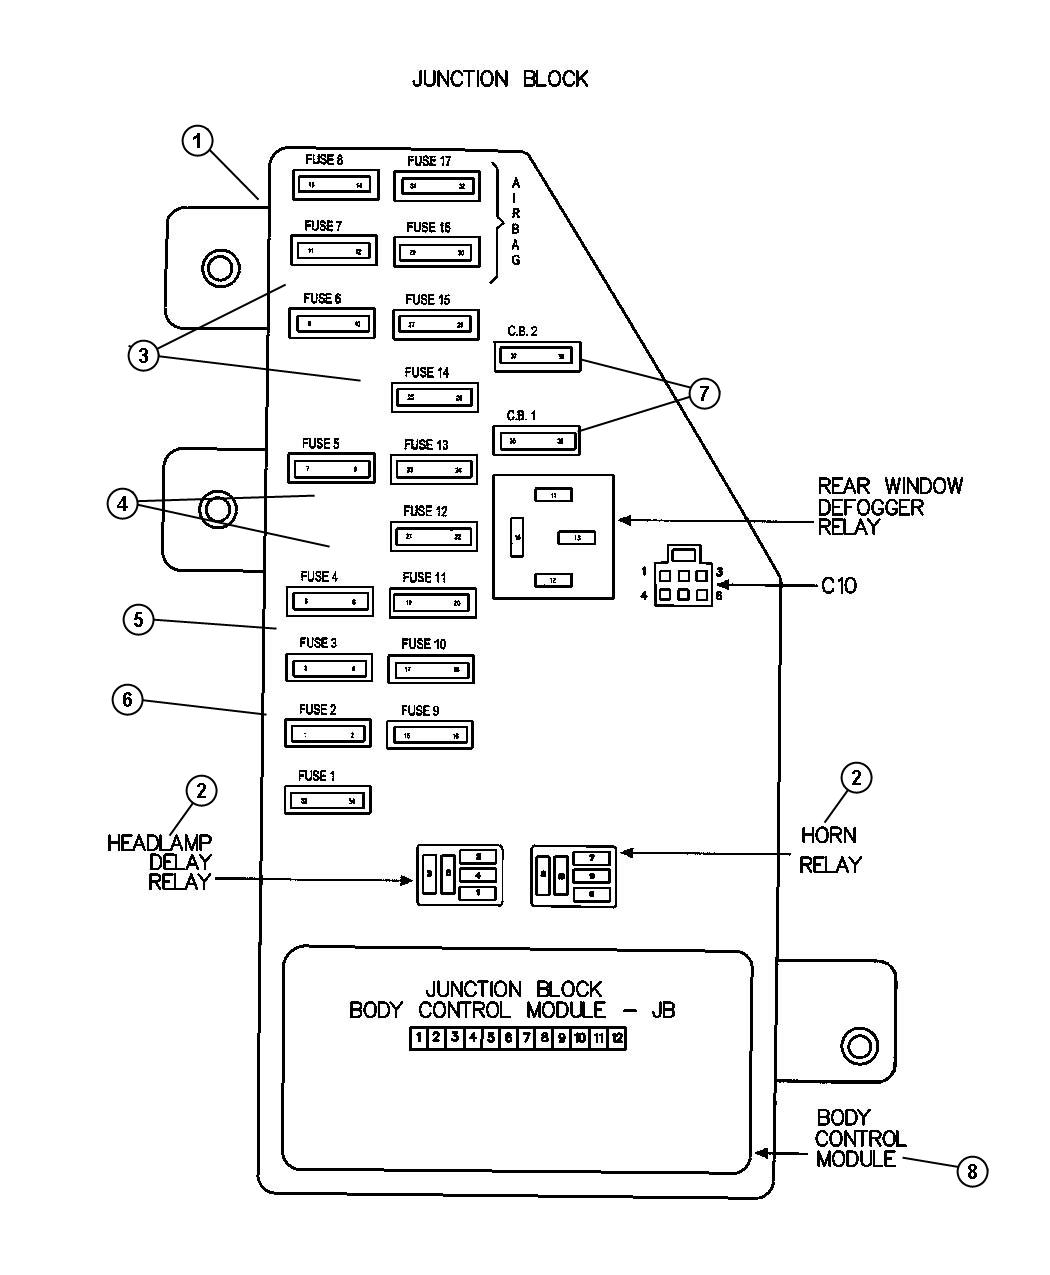 hight resolution of 04 dodge stratus wiring diagram wiring library2004 dodge stratus fuse box diagram